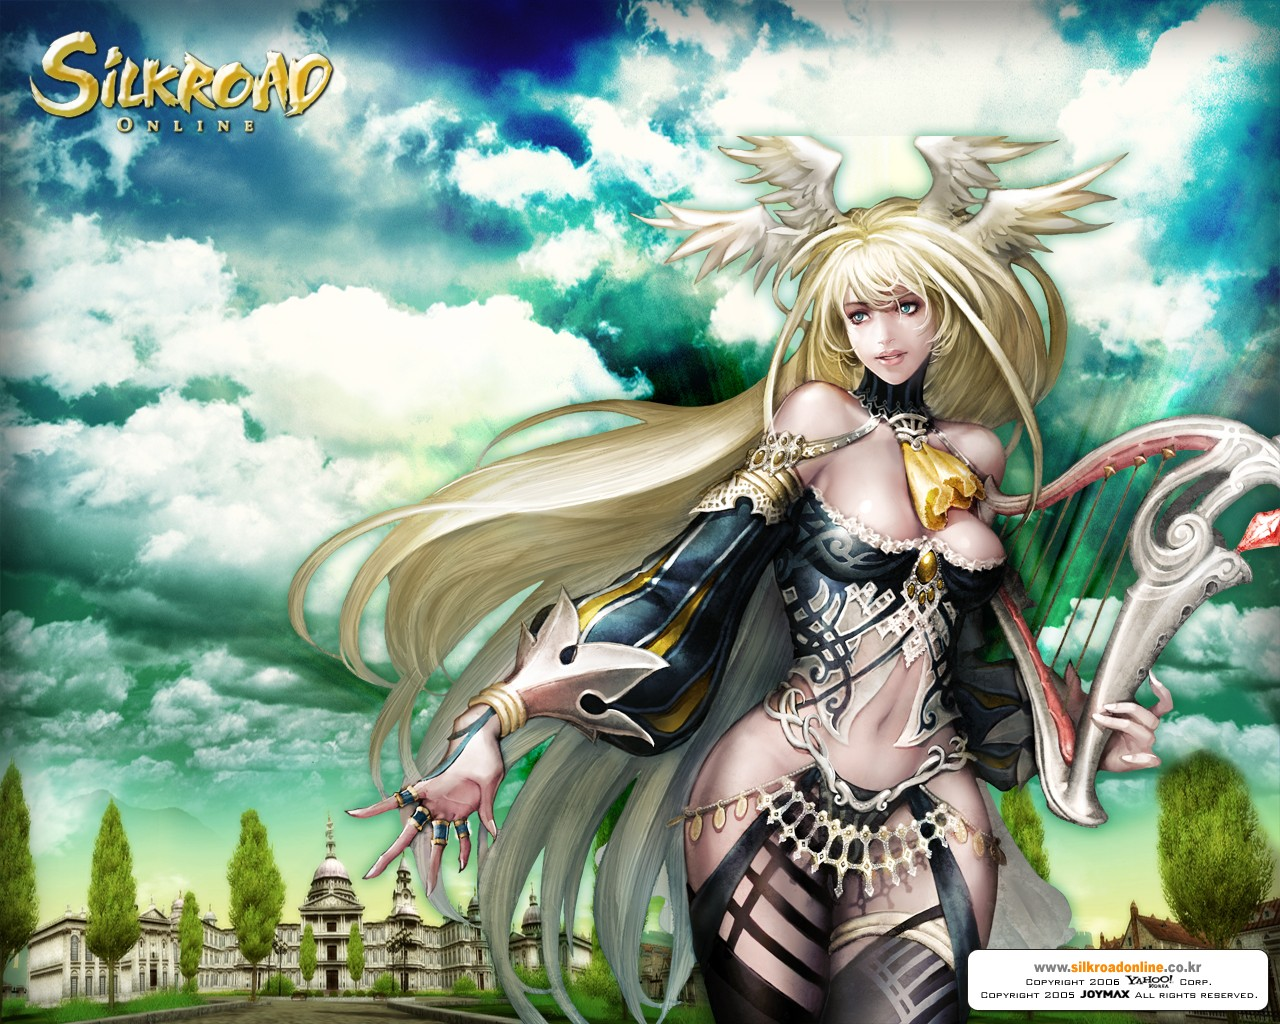 Silkroad Online Fantasy Wallpapers 1280x1024 NO.30 Desktop Wallpaper ...: www.wallcoo.net/game/game_silkroad/wallpapers/1280x1024/silkroad...